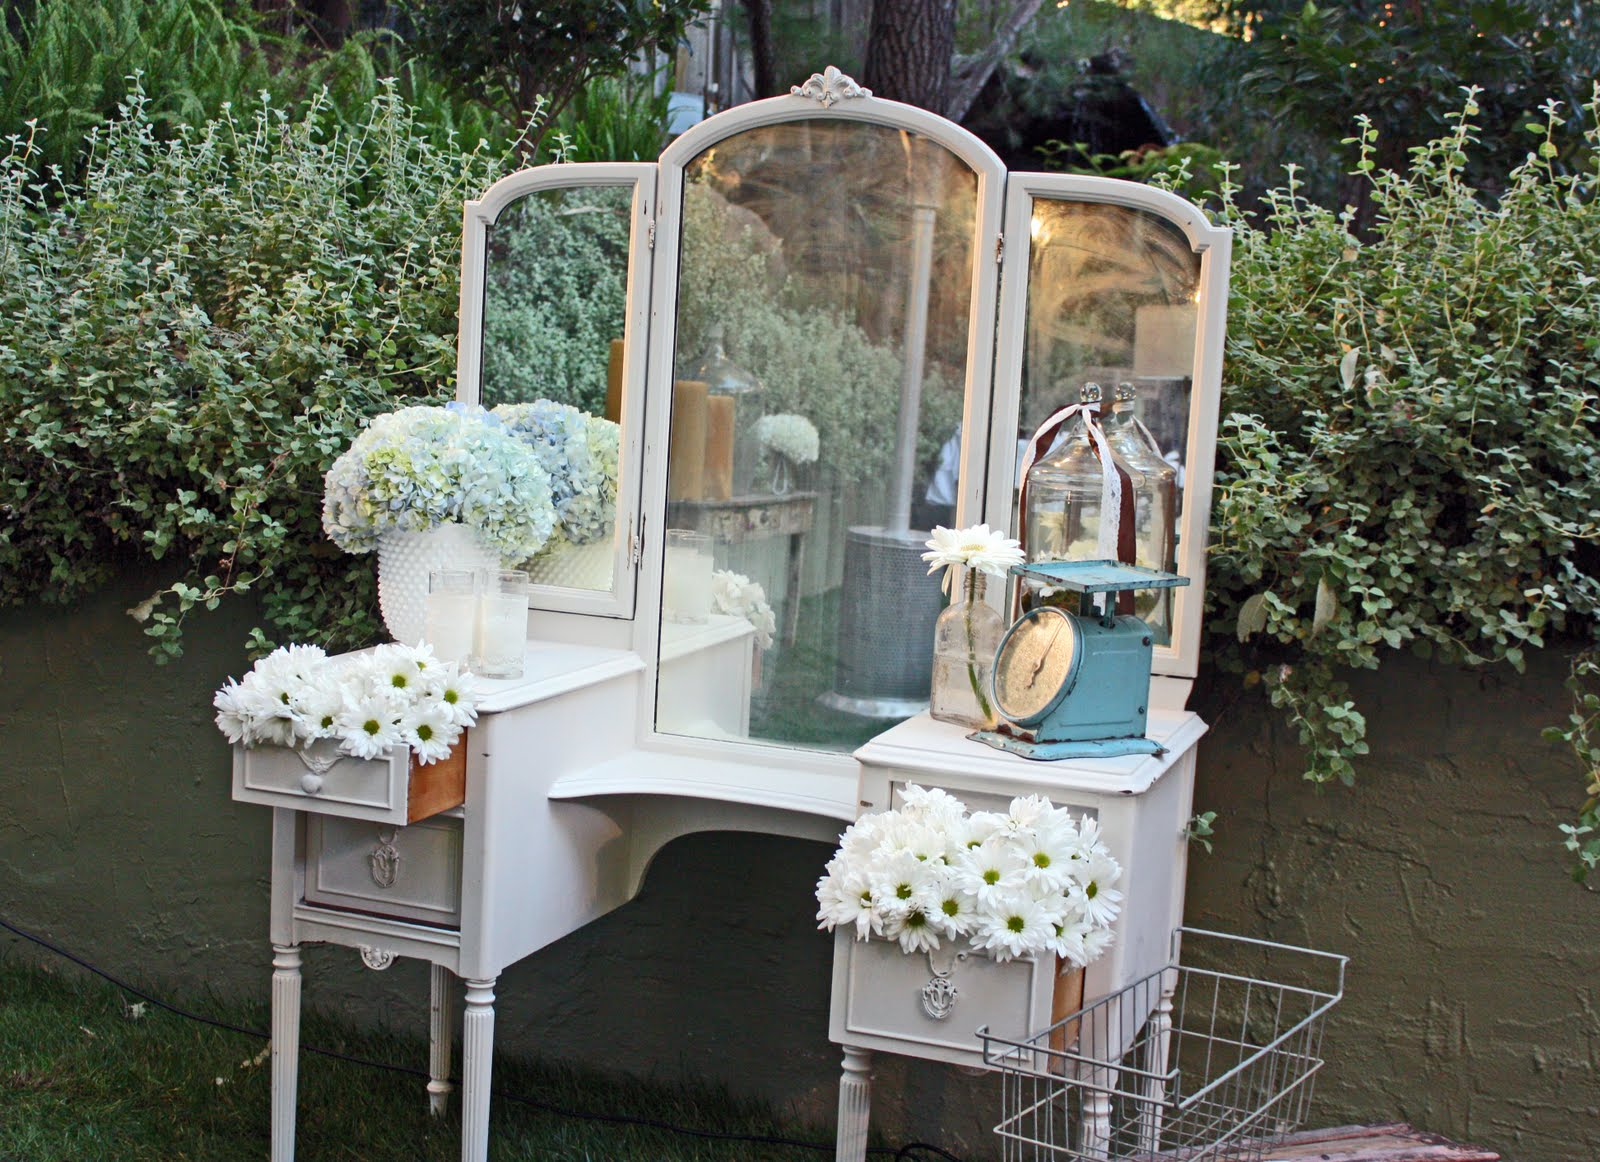 Storibook weddings tori and dean 39 s shabby chic wedding - Decoracion estilo shabby chic ...